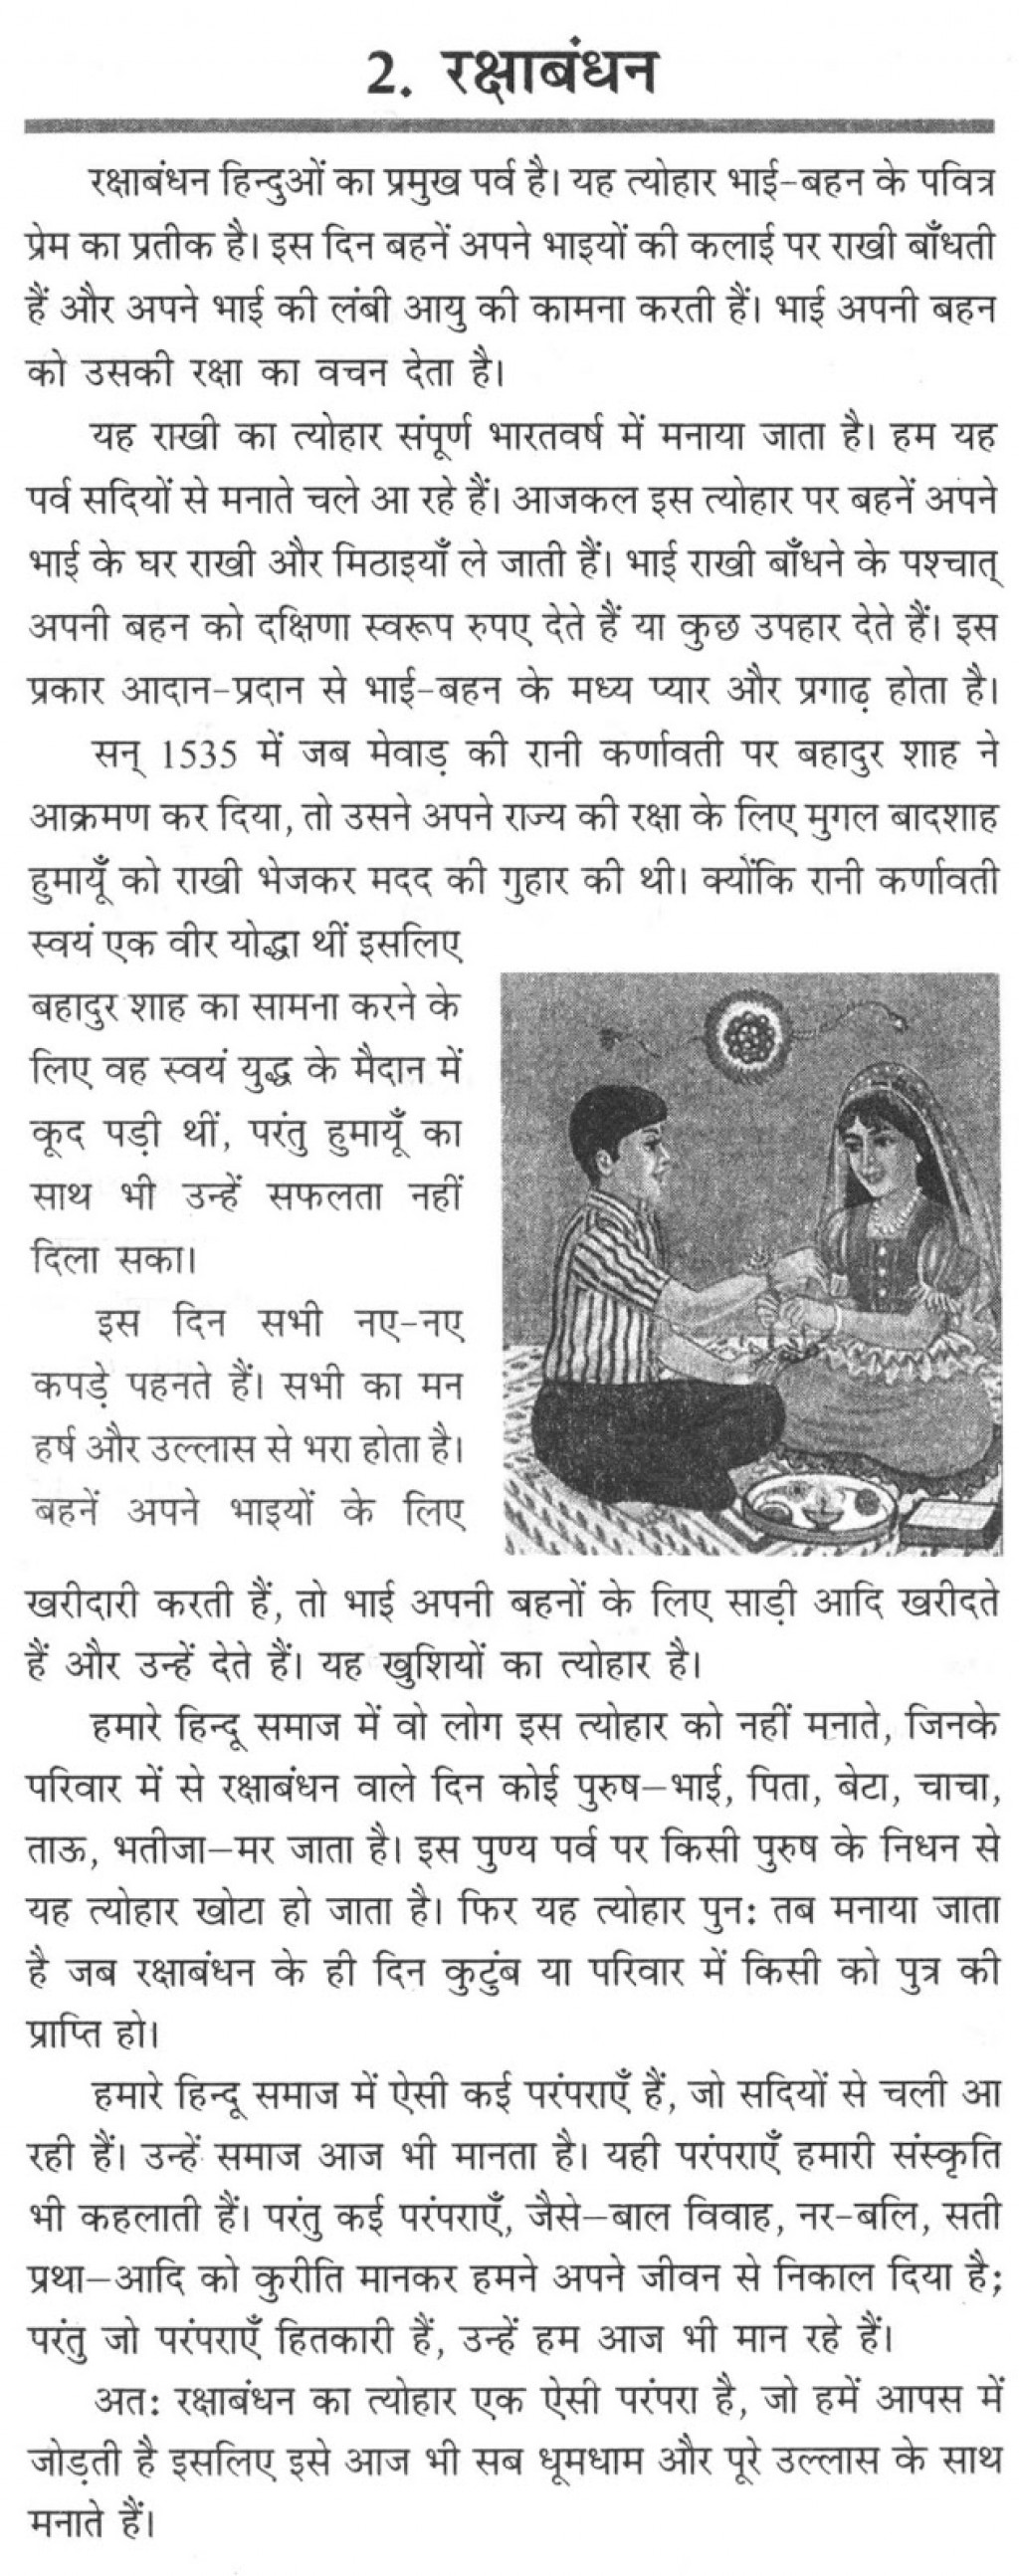 015 Raksha20bandhan20essay20in20hindi202016 Essay Example Good Habits In Exceptional Hindi Habit Eating And Bad Large